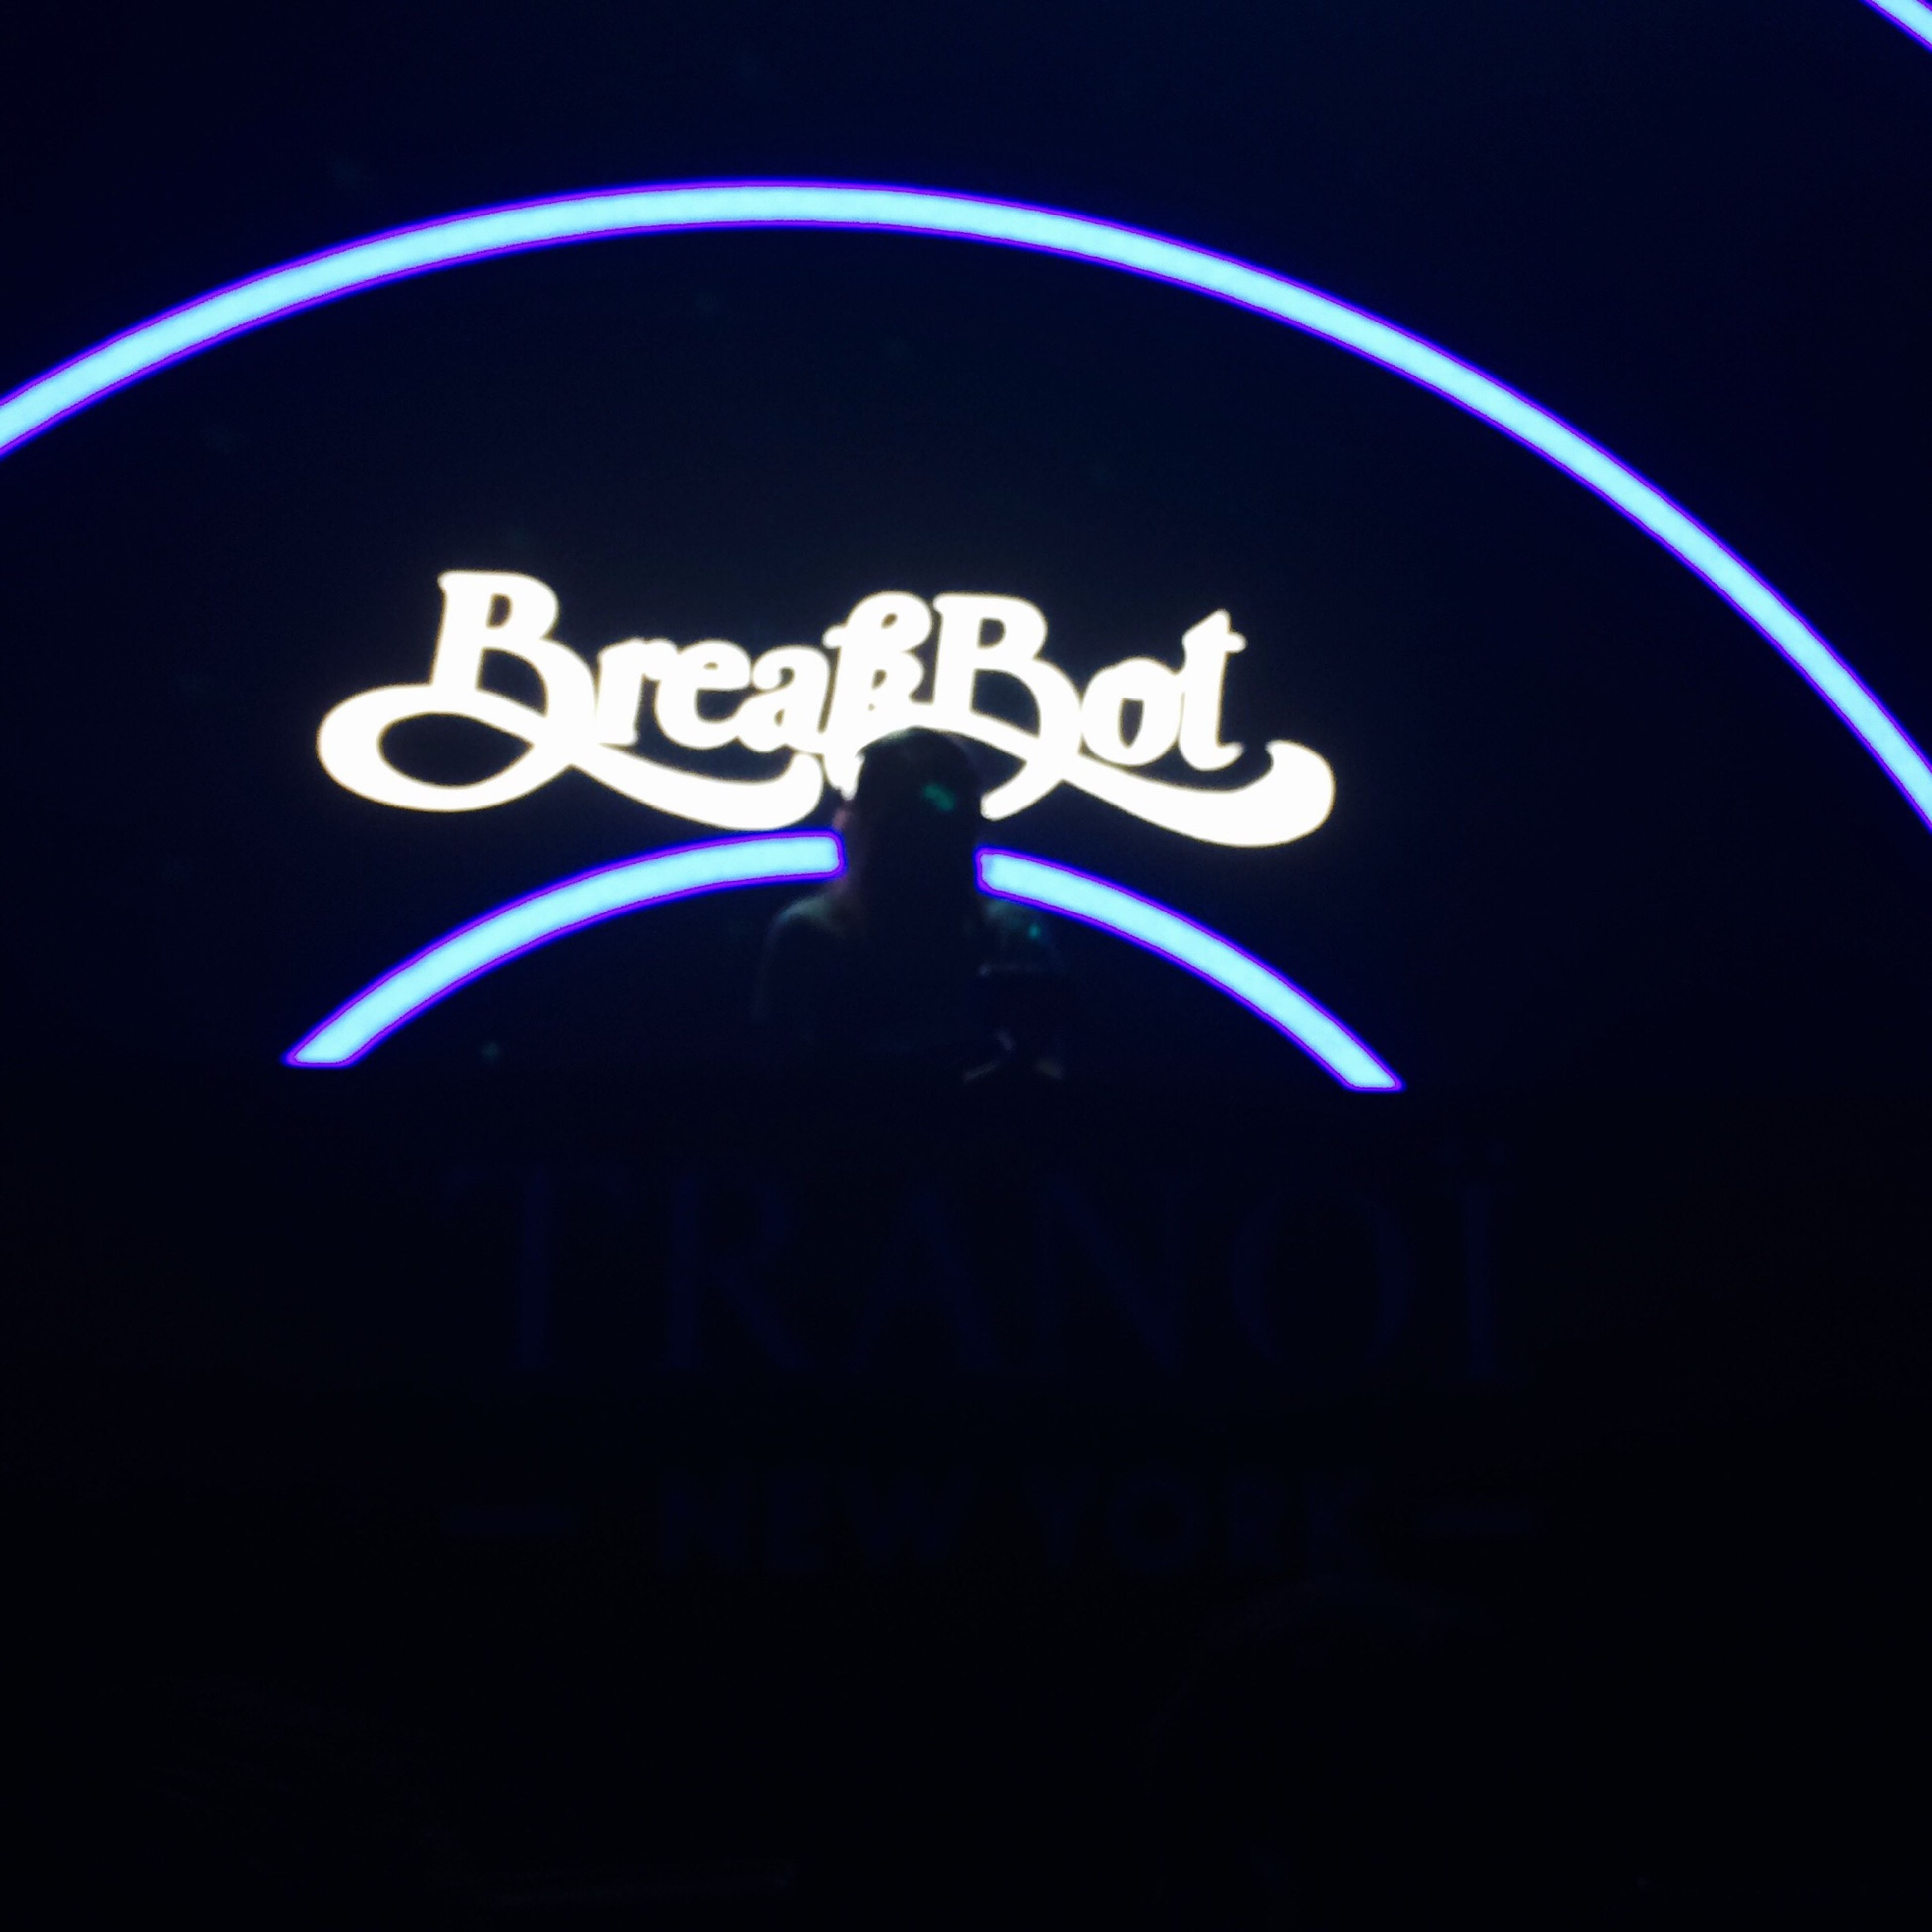 illuminated, night, blue, text, communication, western script, circle, lighting equipment, guidance, light - natural phenomenon, low angle view, dark, glowing, close-up, indoors, sign, neon, human representation, no people, capital letter